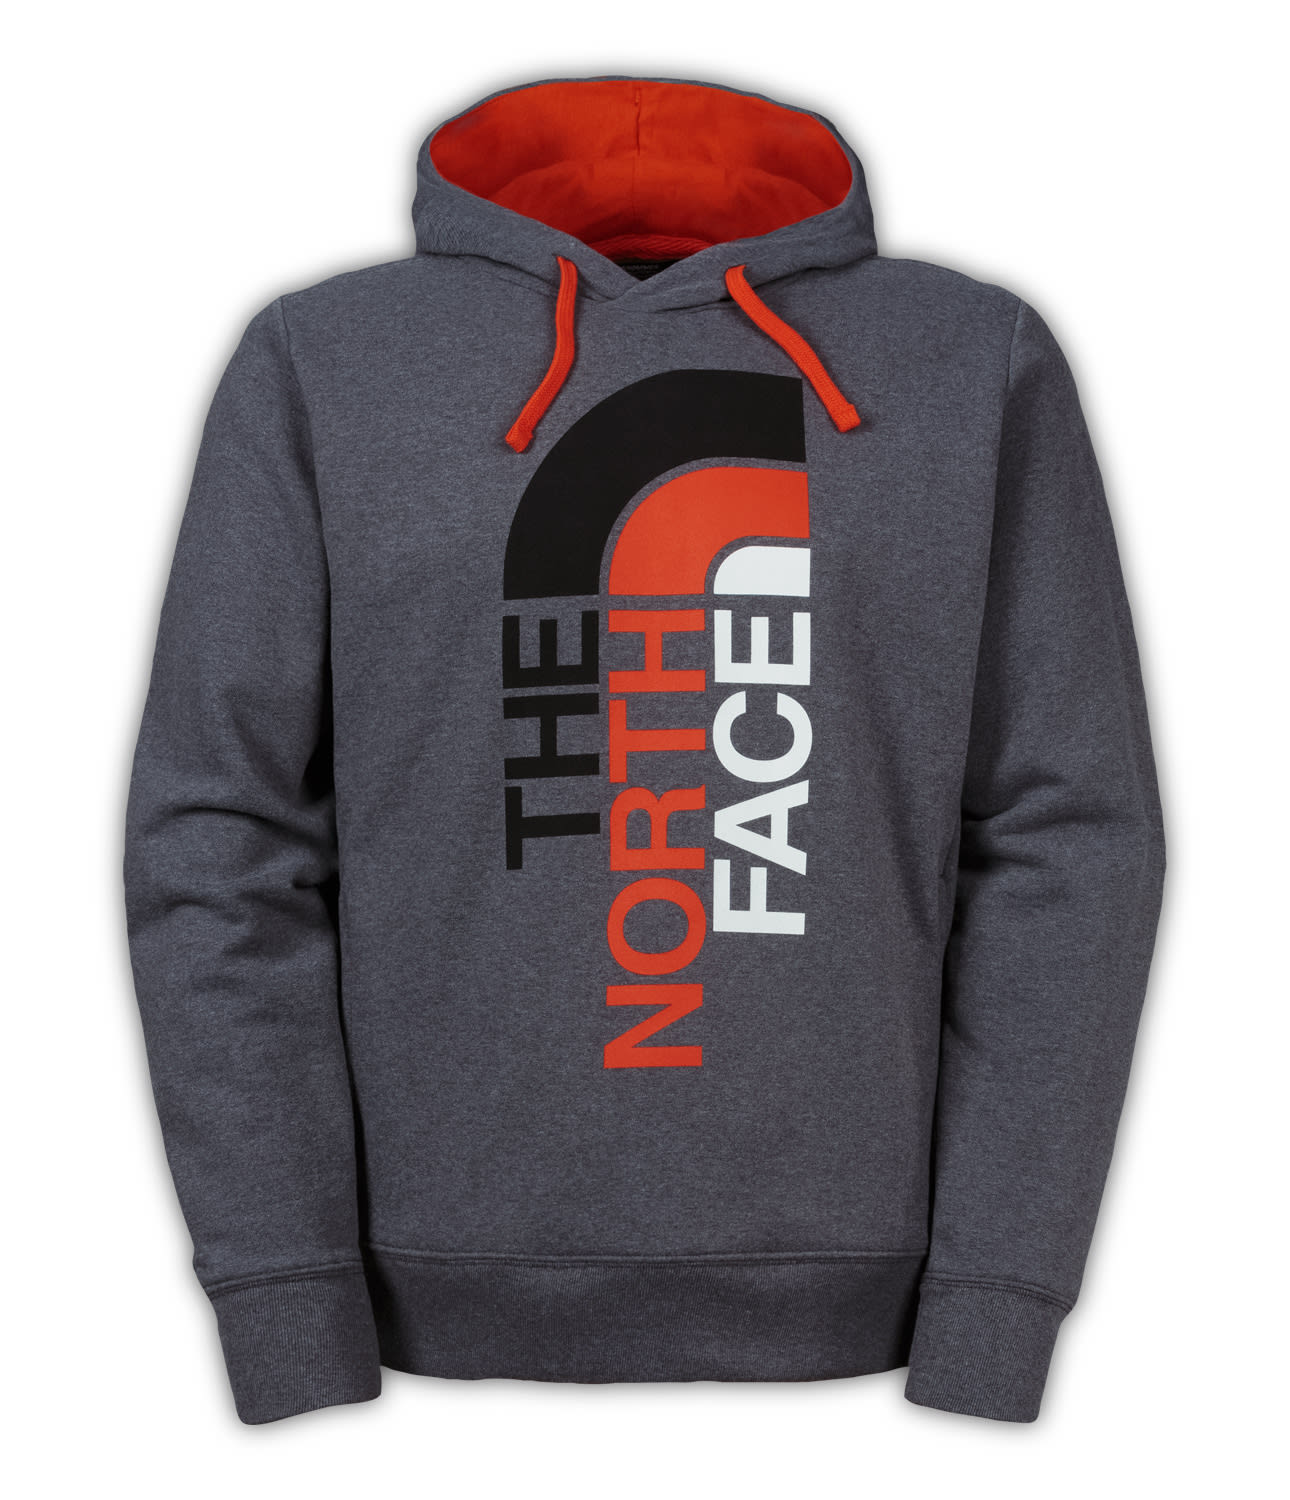 The north face hoodies on sale